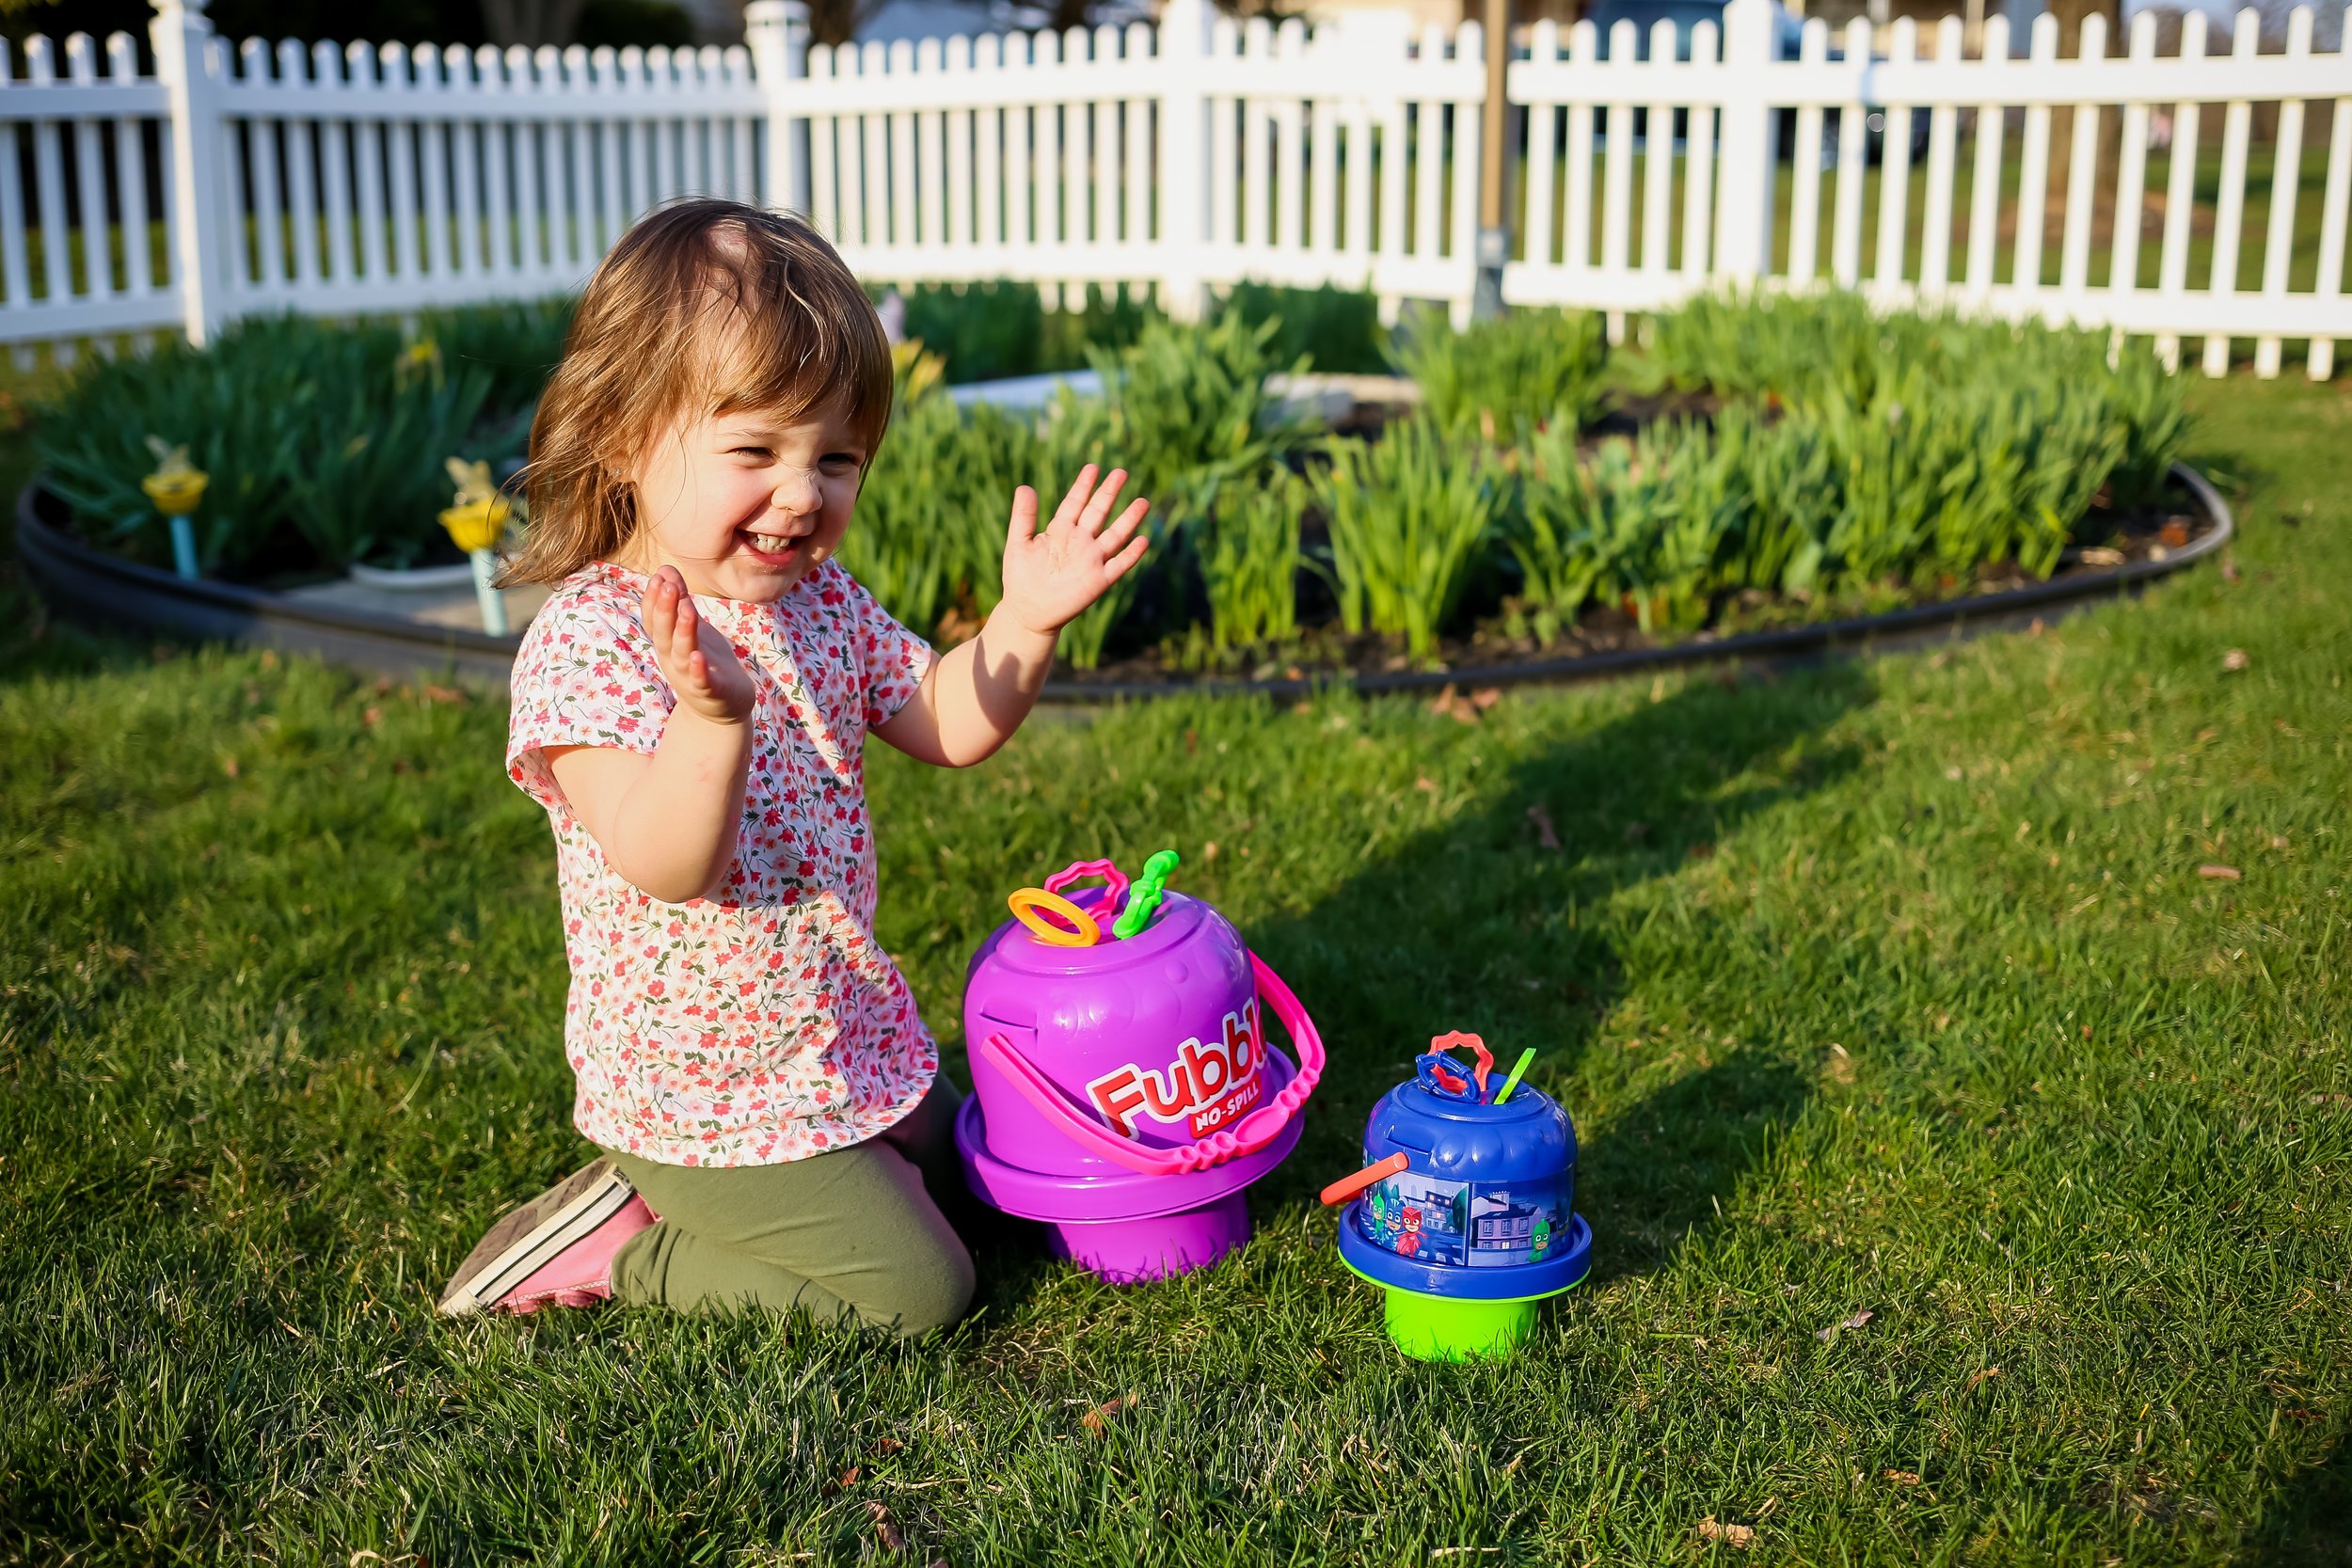 Toddler girl playing with bubbles during a backyard family photo session in Lehigh Valley, Pennsylvania.